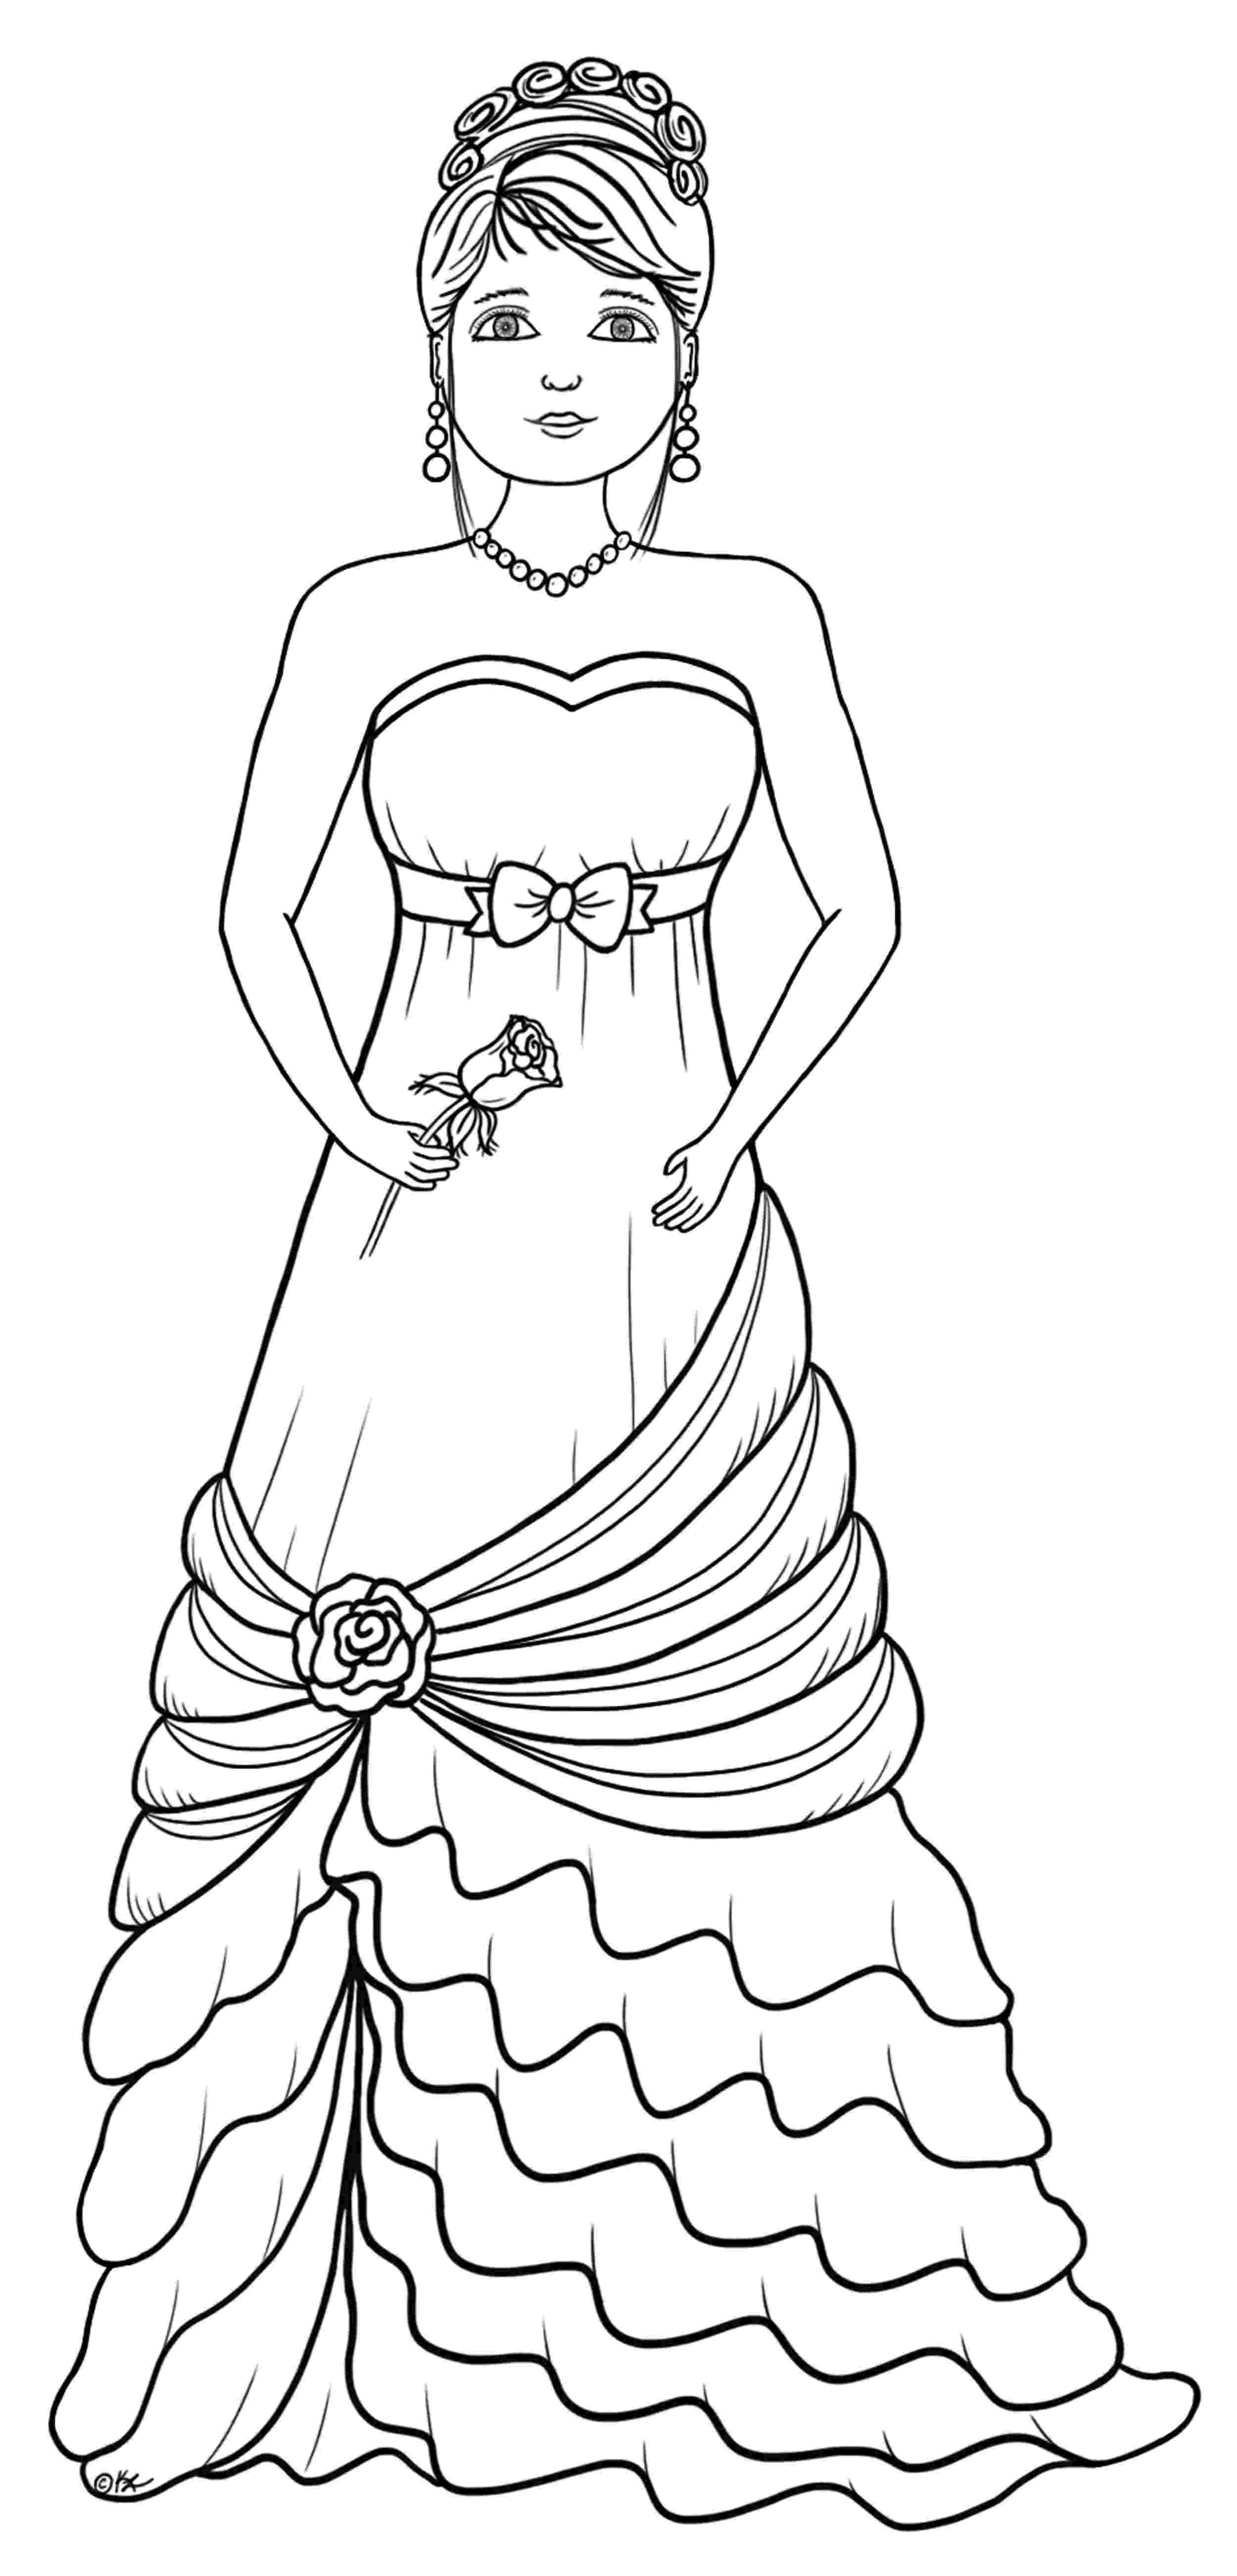 elegant coloring pages marisa hopkins living the creative life printable pages elegant coloring